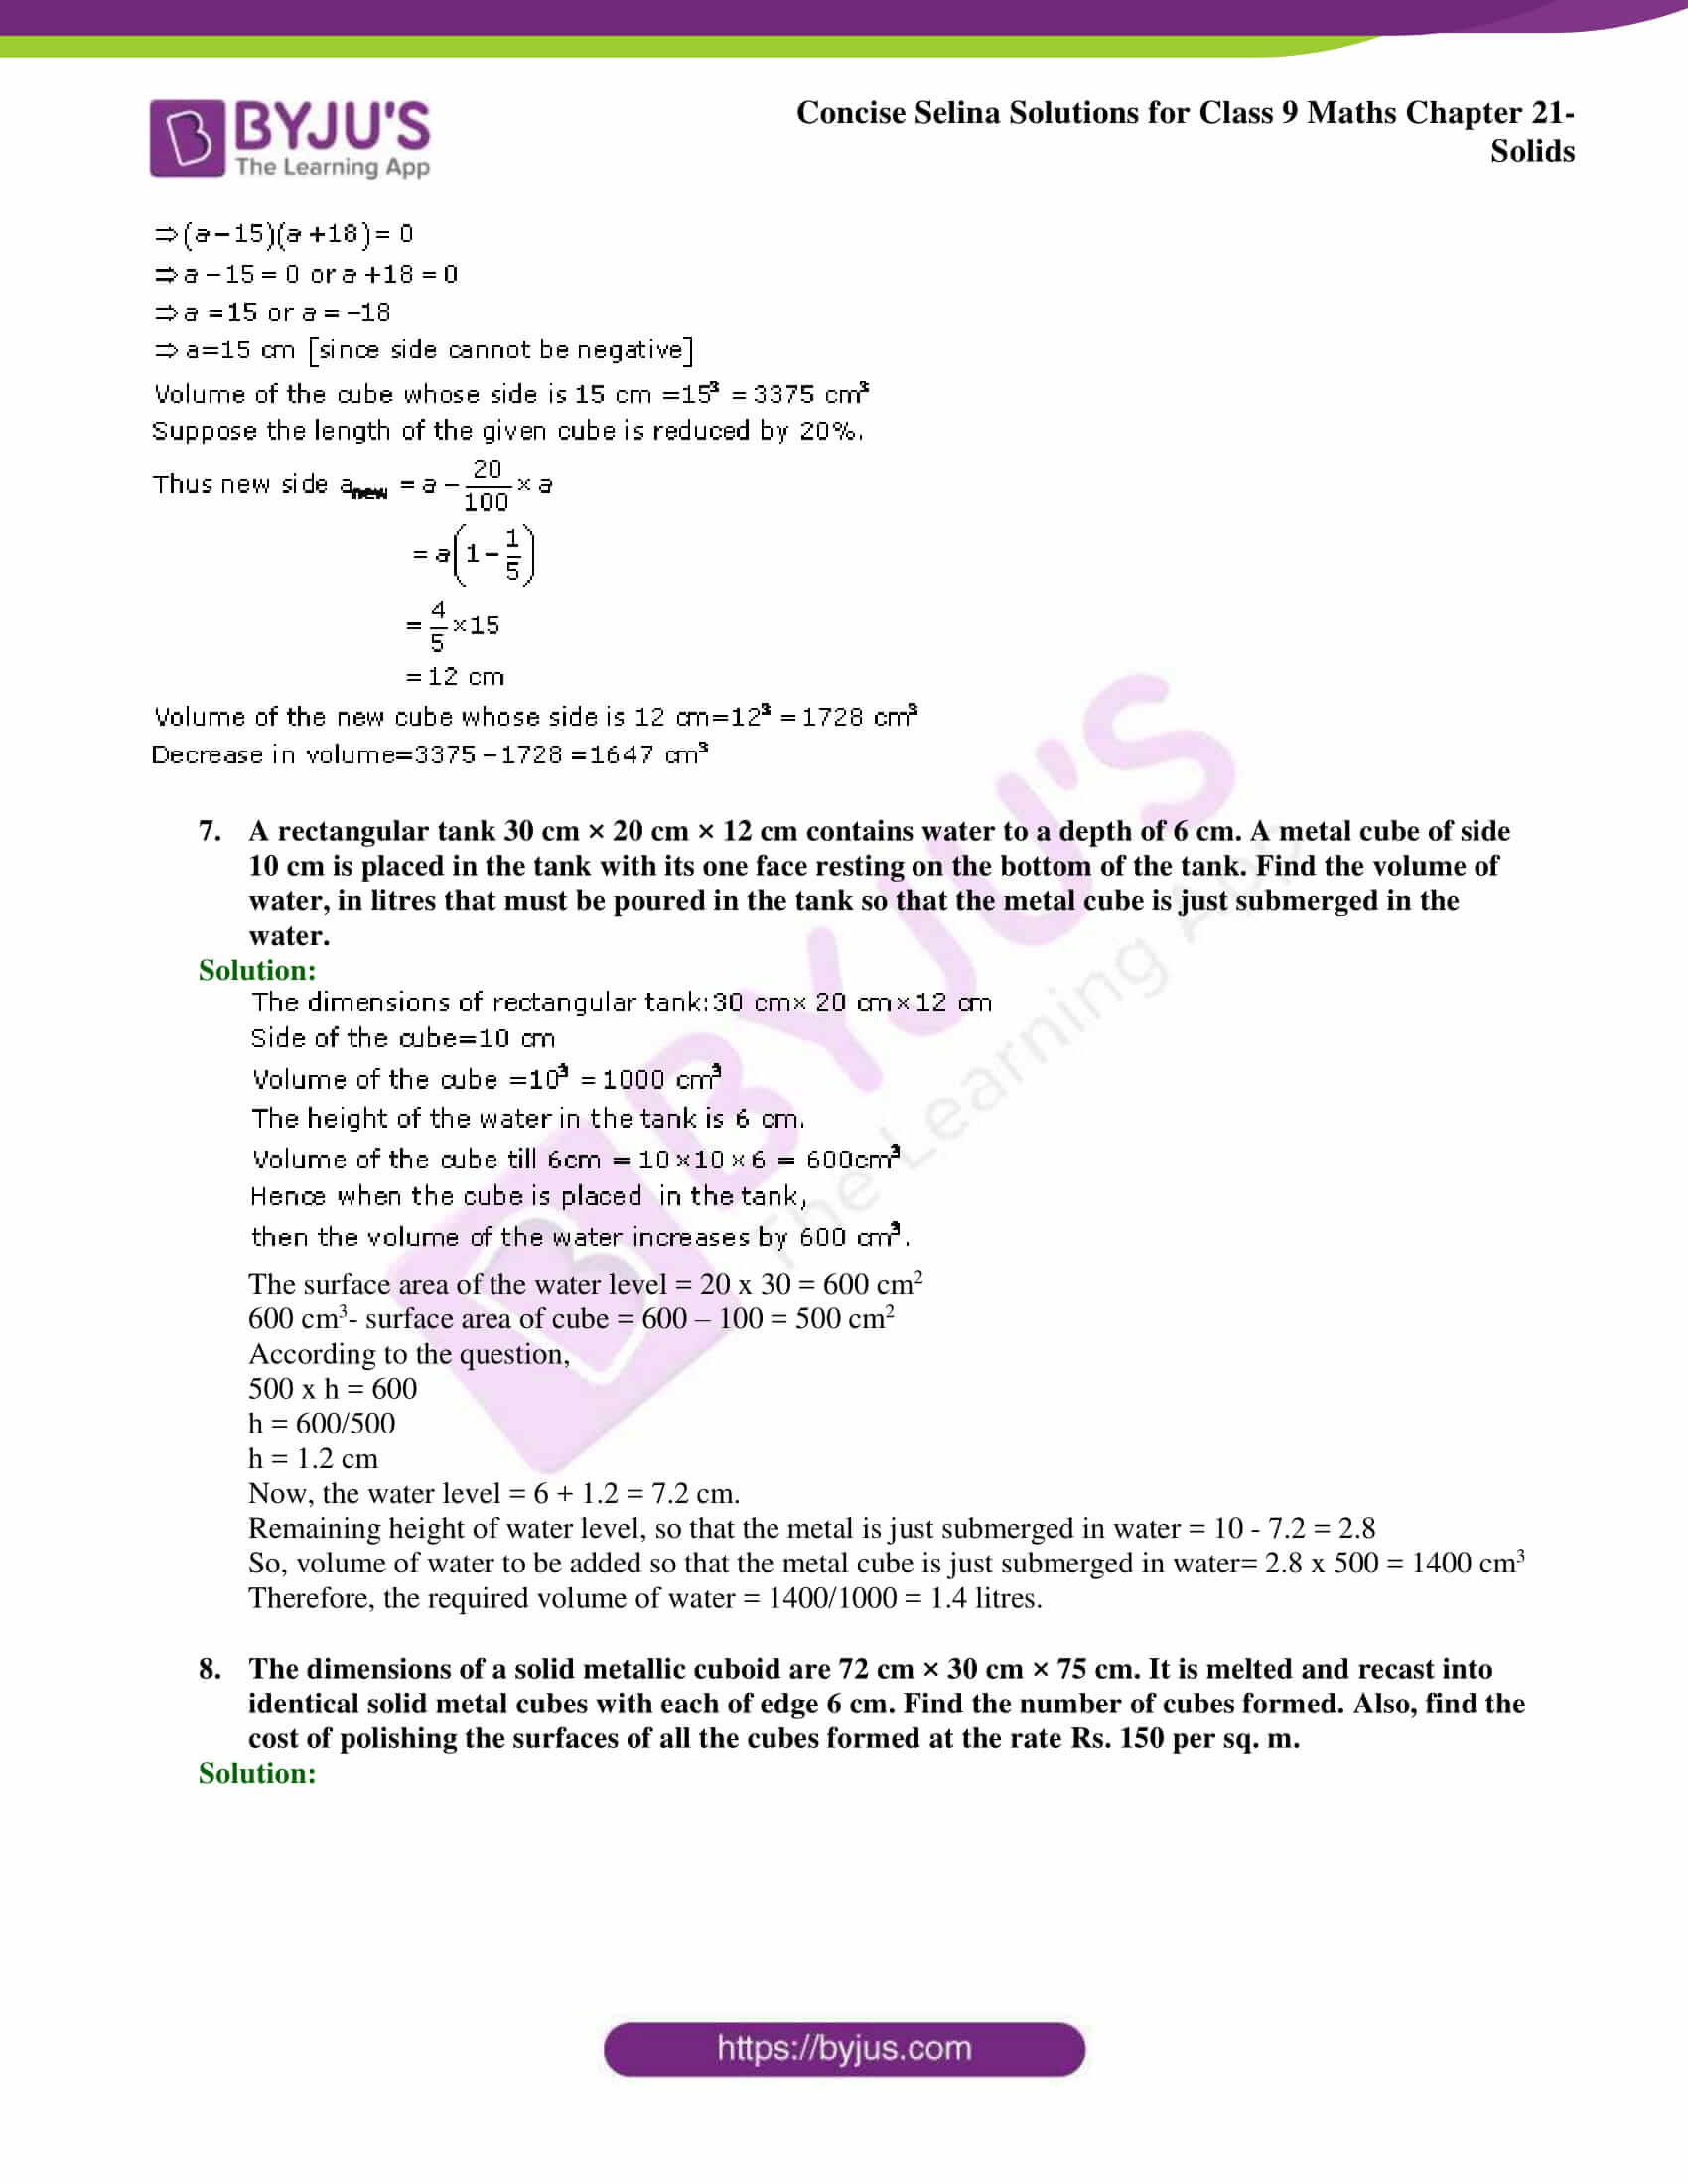 Concise Selina Solutions Class 9 Maths Chapter 21 Solids part 15